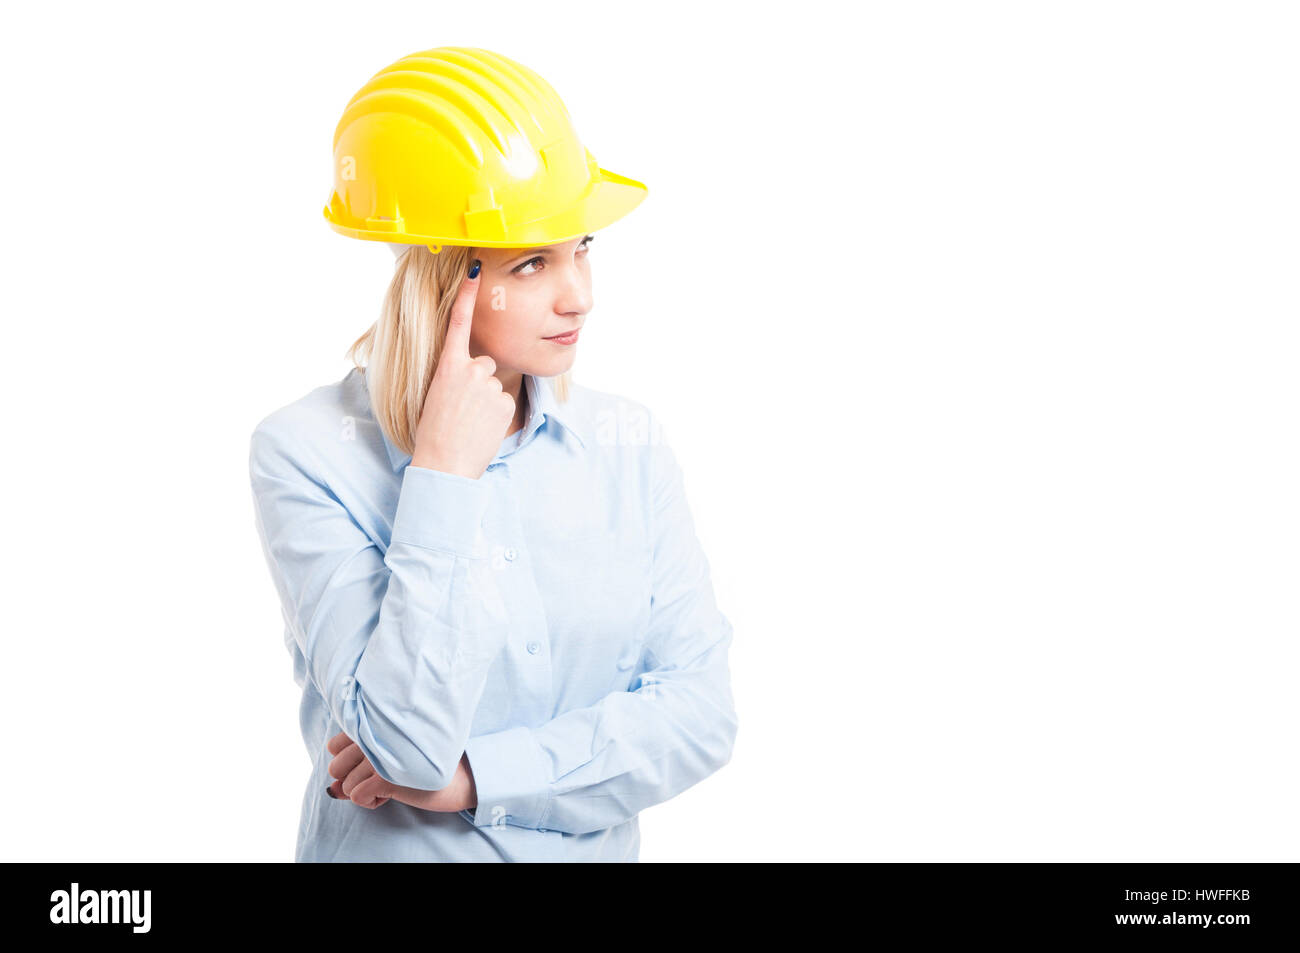 Portrait woman engineer making thinking gesture looking up isolated on white background with copy text space - Stock Image